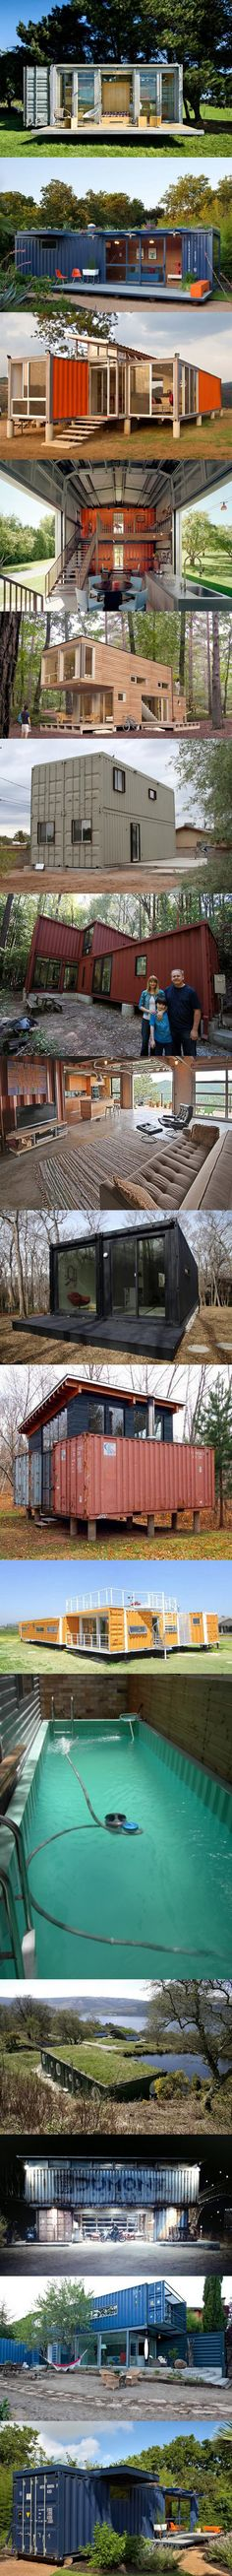 Who Else Wants Simple Step-By-Step Plans To Design And Build A Container Home From Scratch? Building A Container Home, Container Cabin, Cargo Container, Container Houses, Container Architecture, Container Buildings, Sustainable Architecture, Amazing Architecture, Container Home Designs